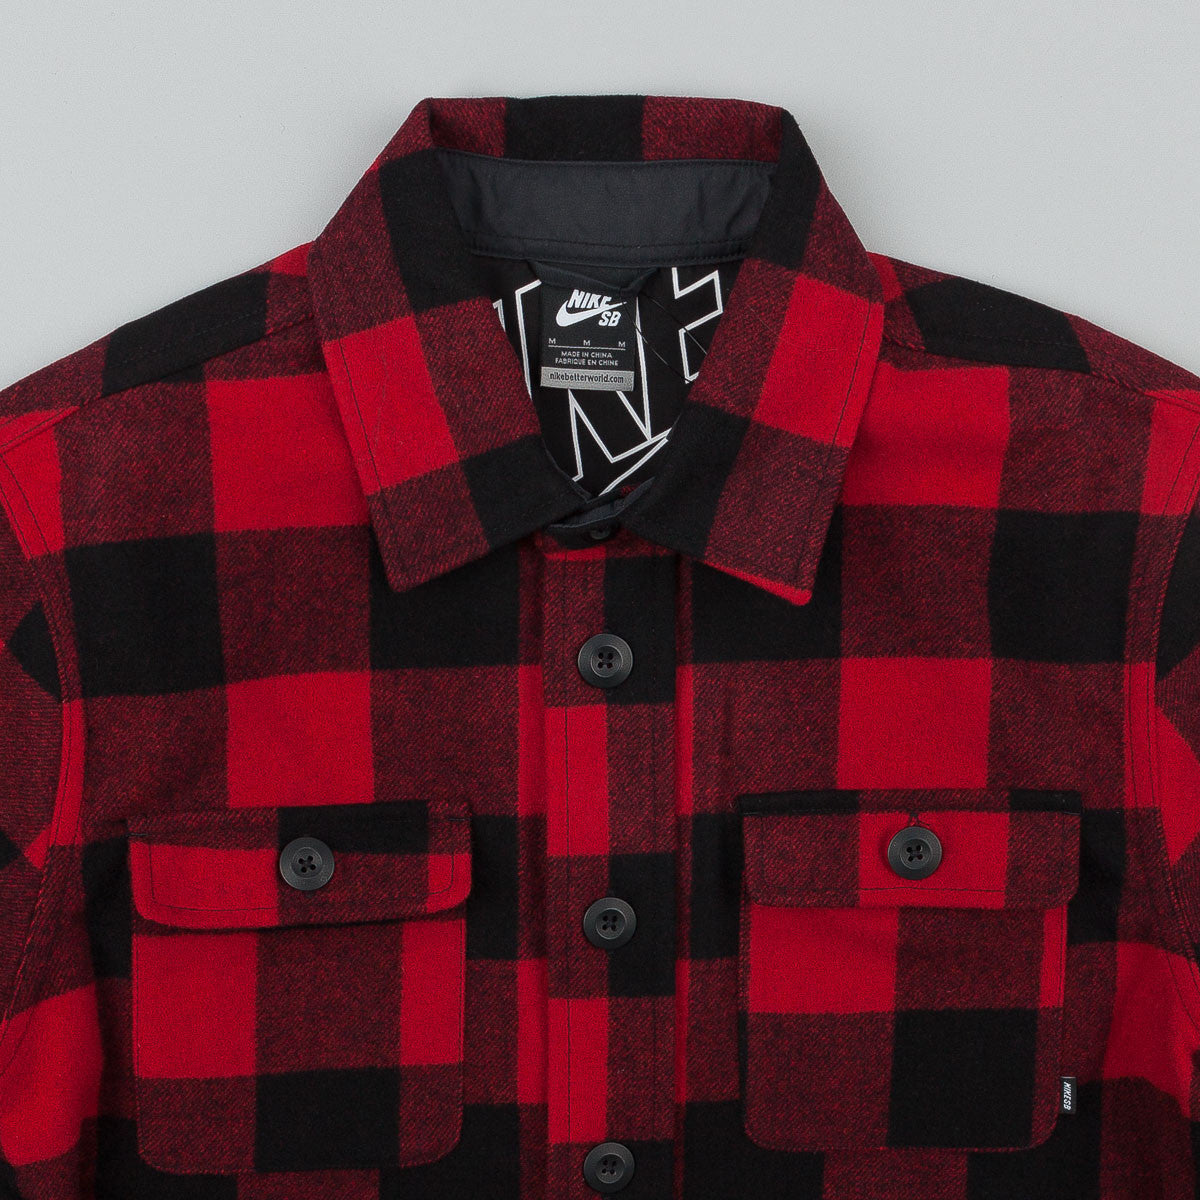 Nike SB Holgate Wool Long Sleeve Shirt - Gym Red